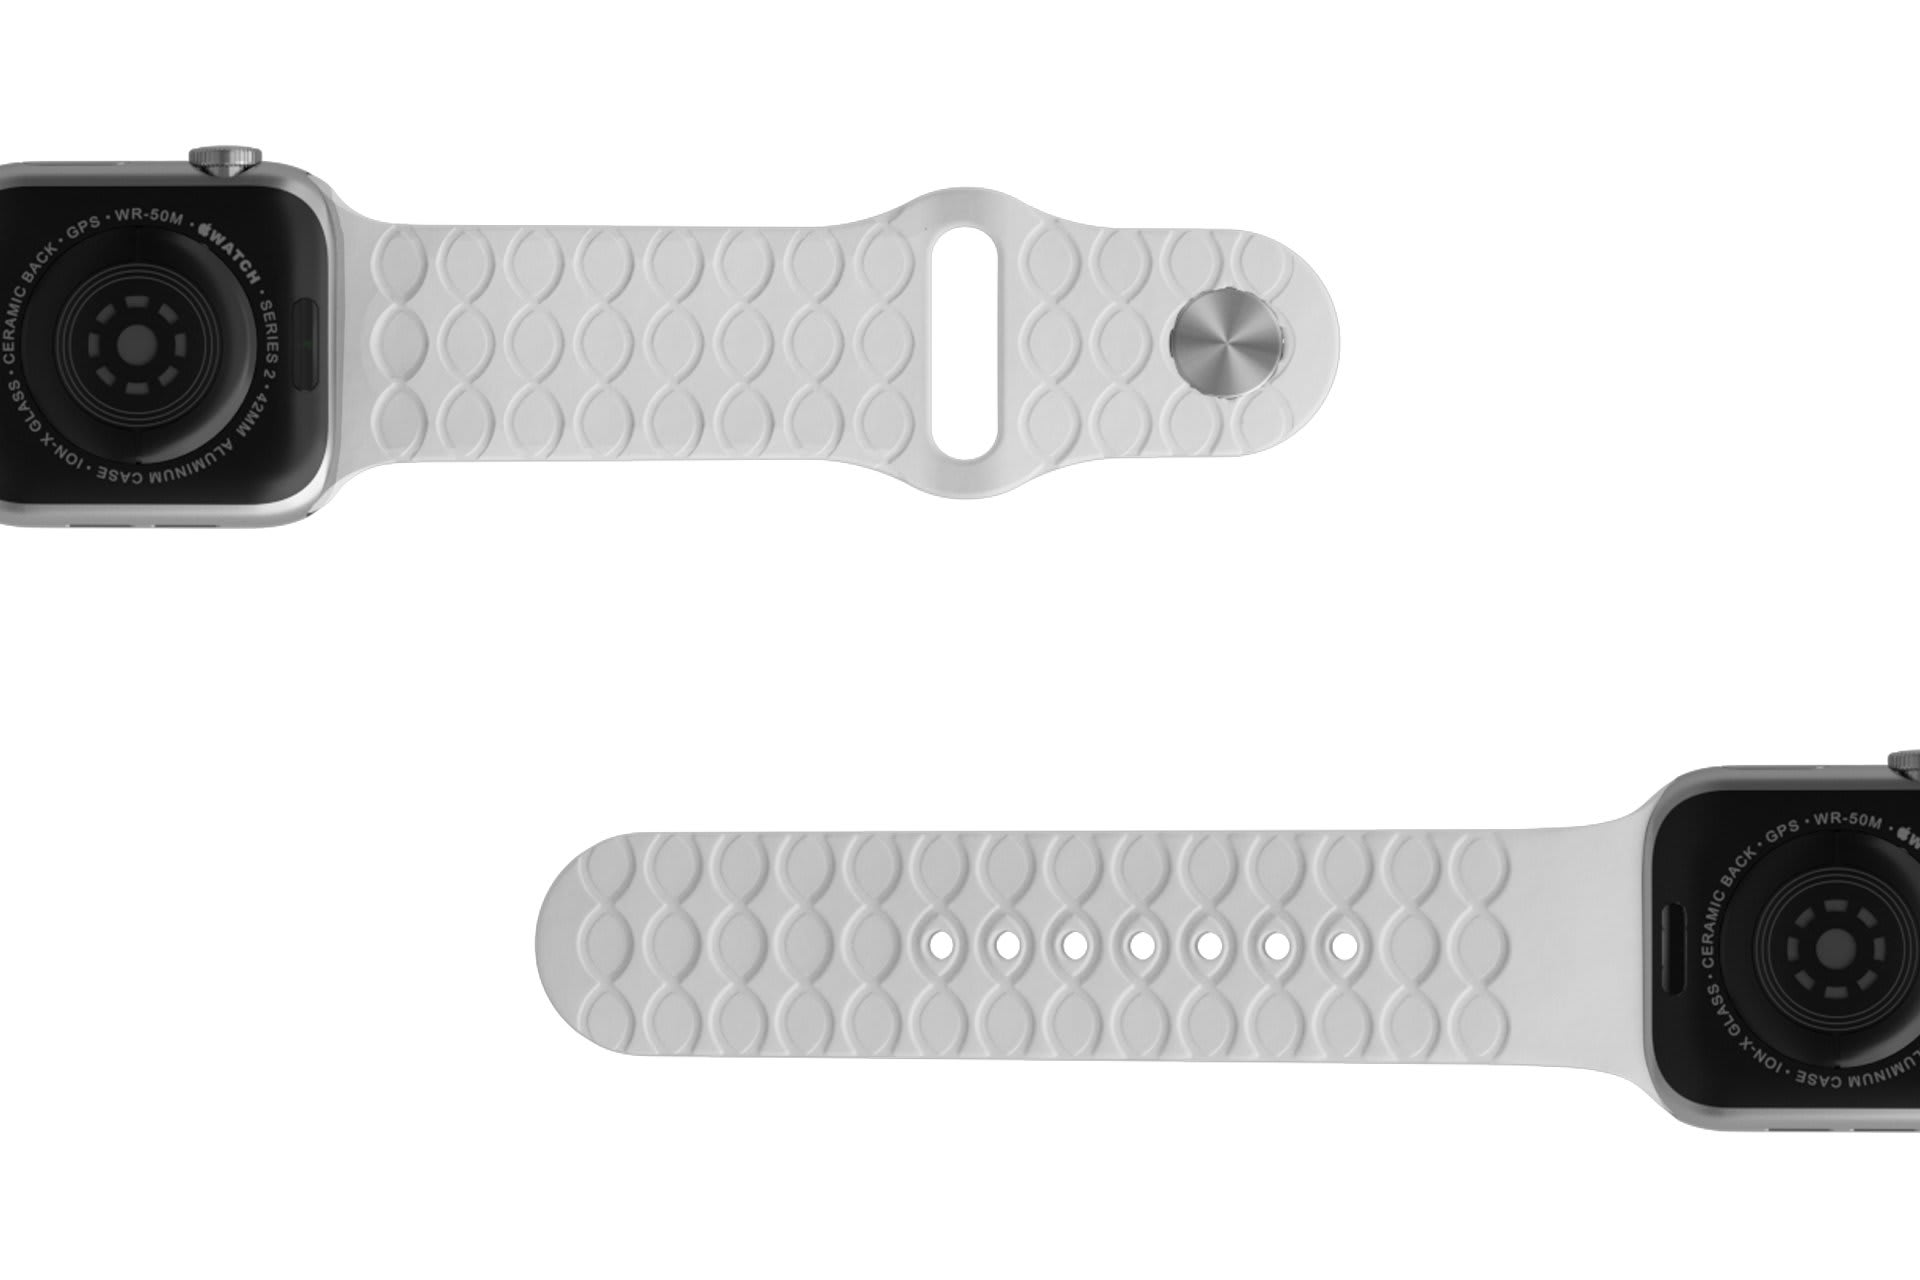 Dimension Arrows White Apple   watch band with silver hardware viewed bottom up